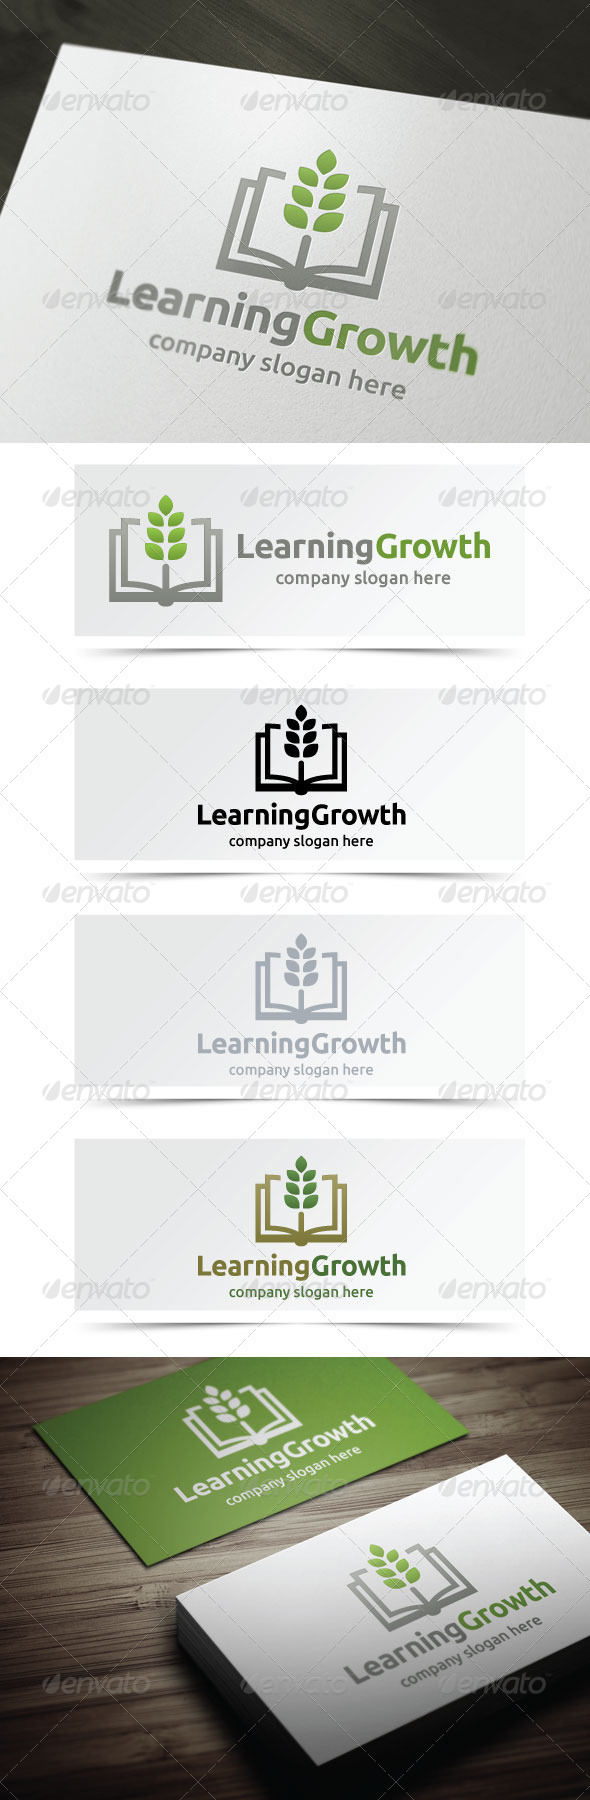 Learning Growth